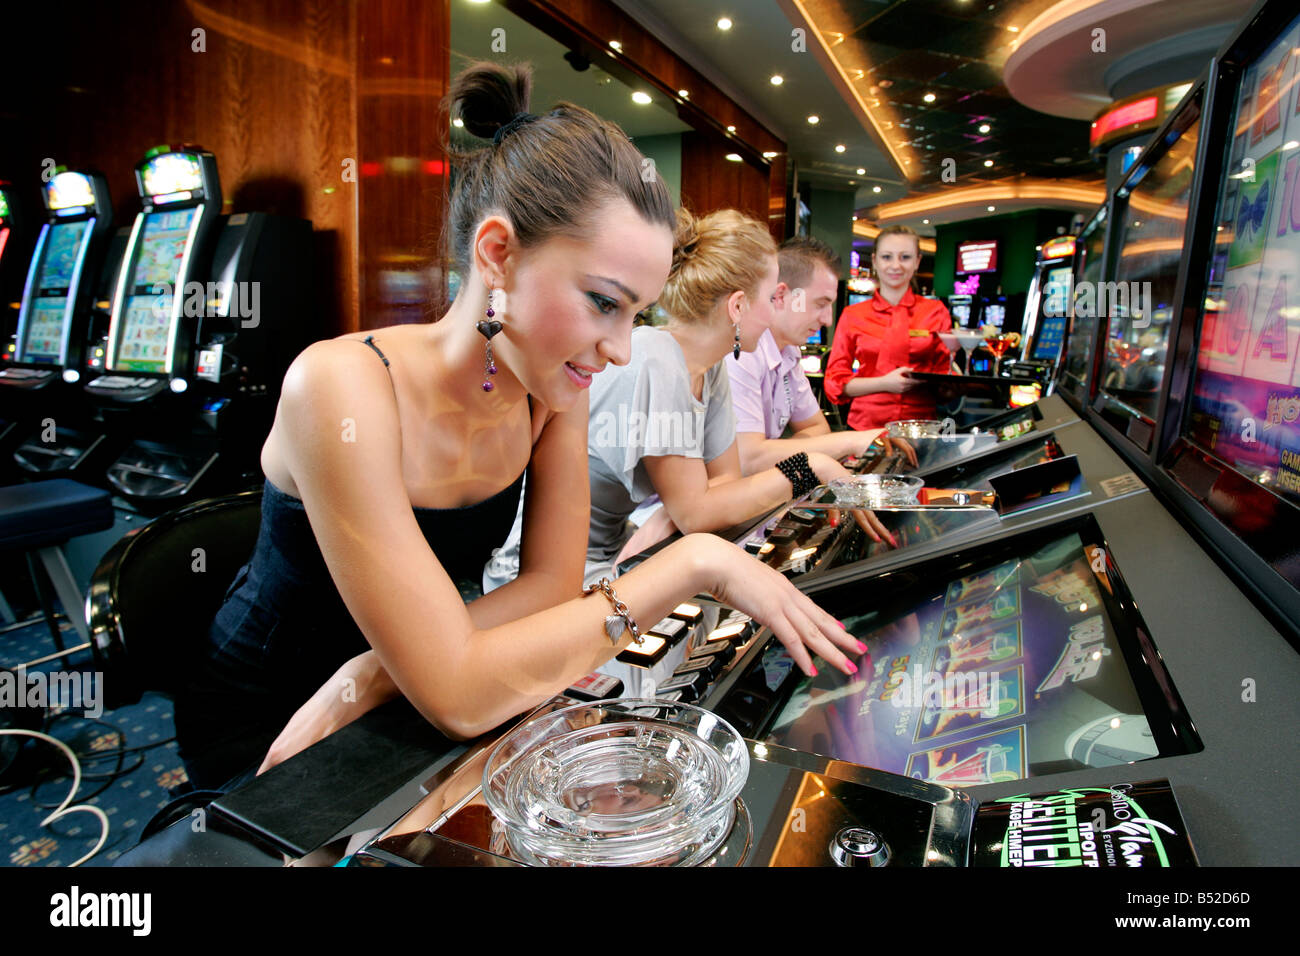 Euro casino bet games isle casino and hotel at waterloo ia